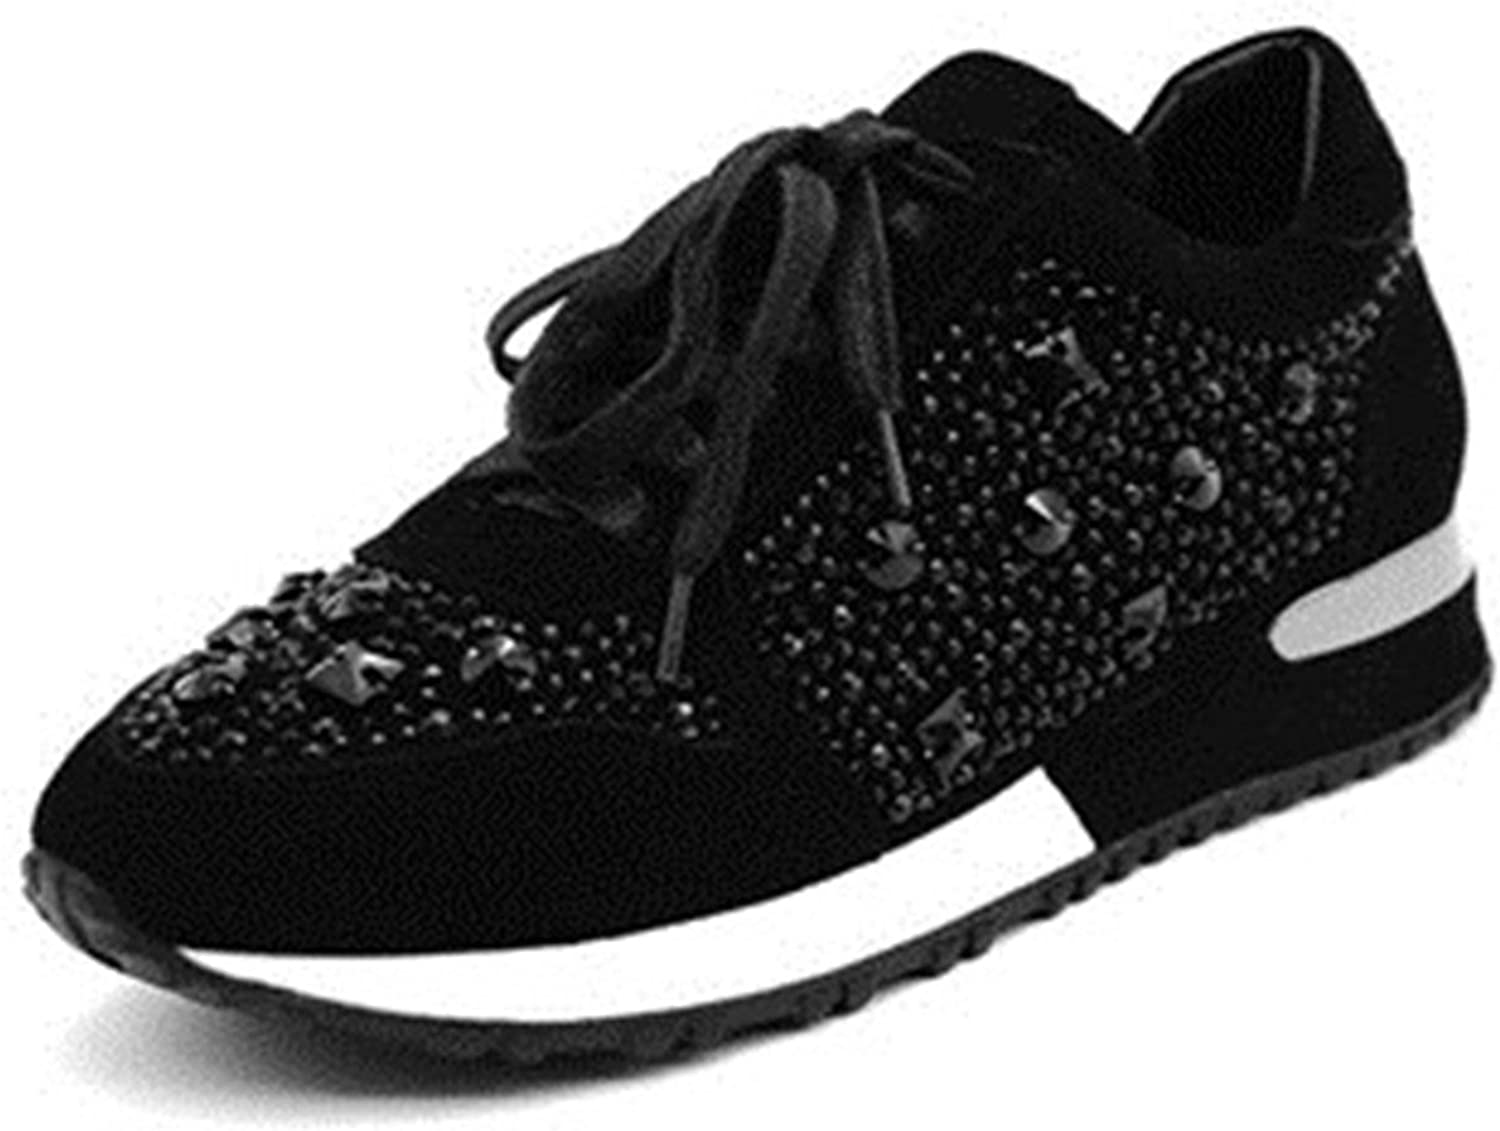 Nerefy 2018 Women Sneakers shoes Women Flats with Genuine Leather Fashion Lace-up Brand Luxury